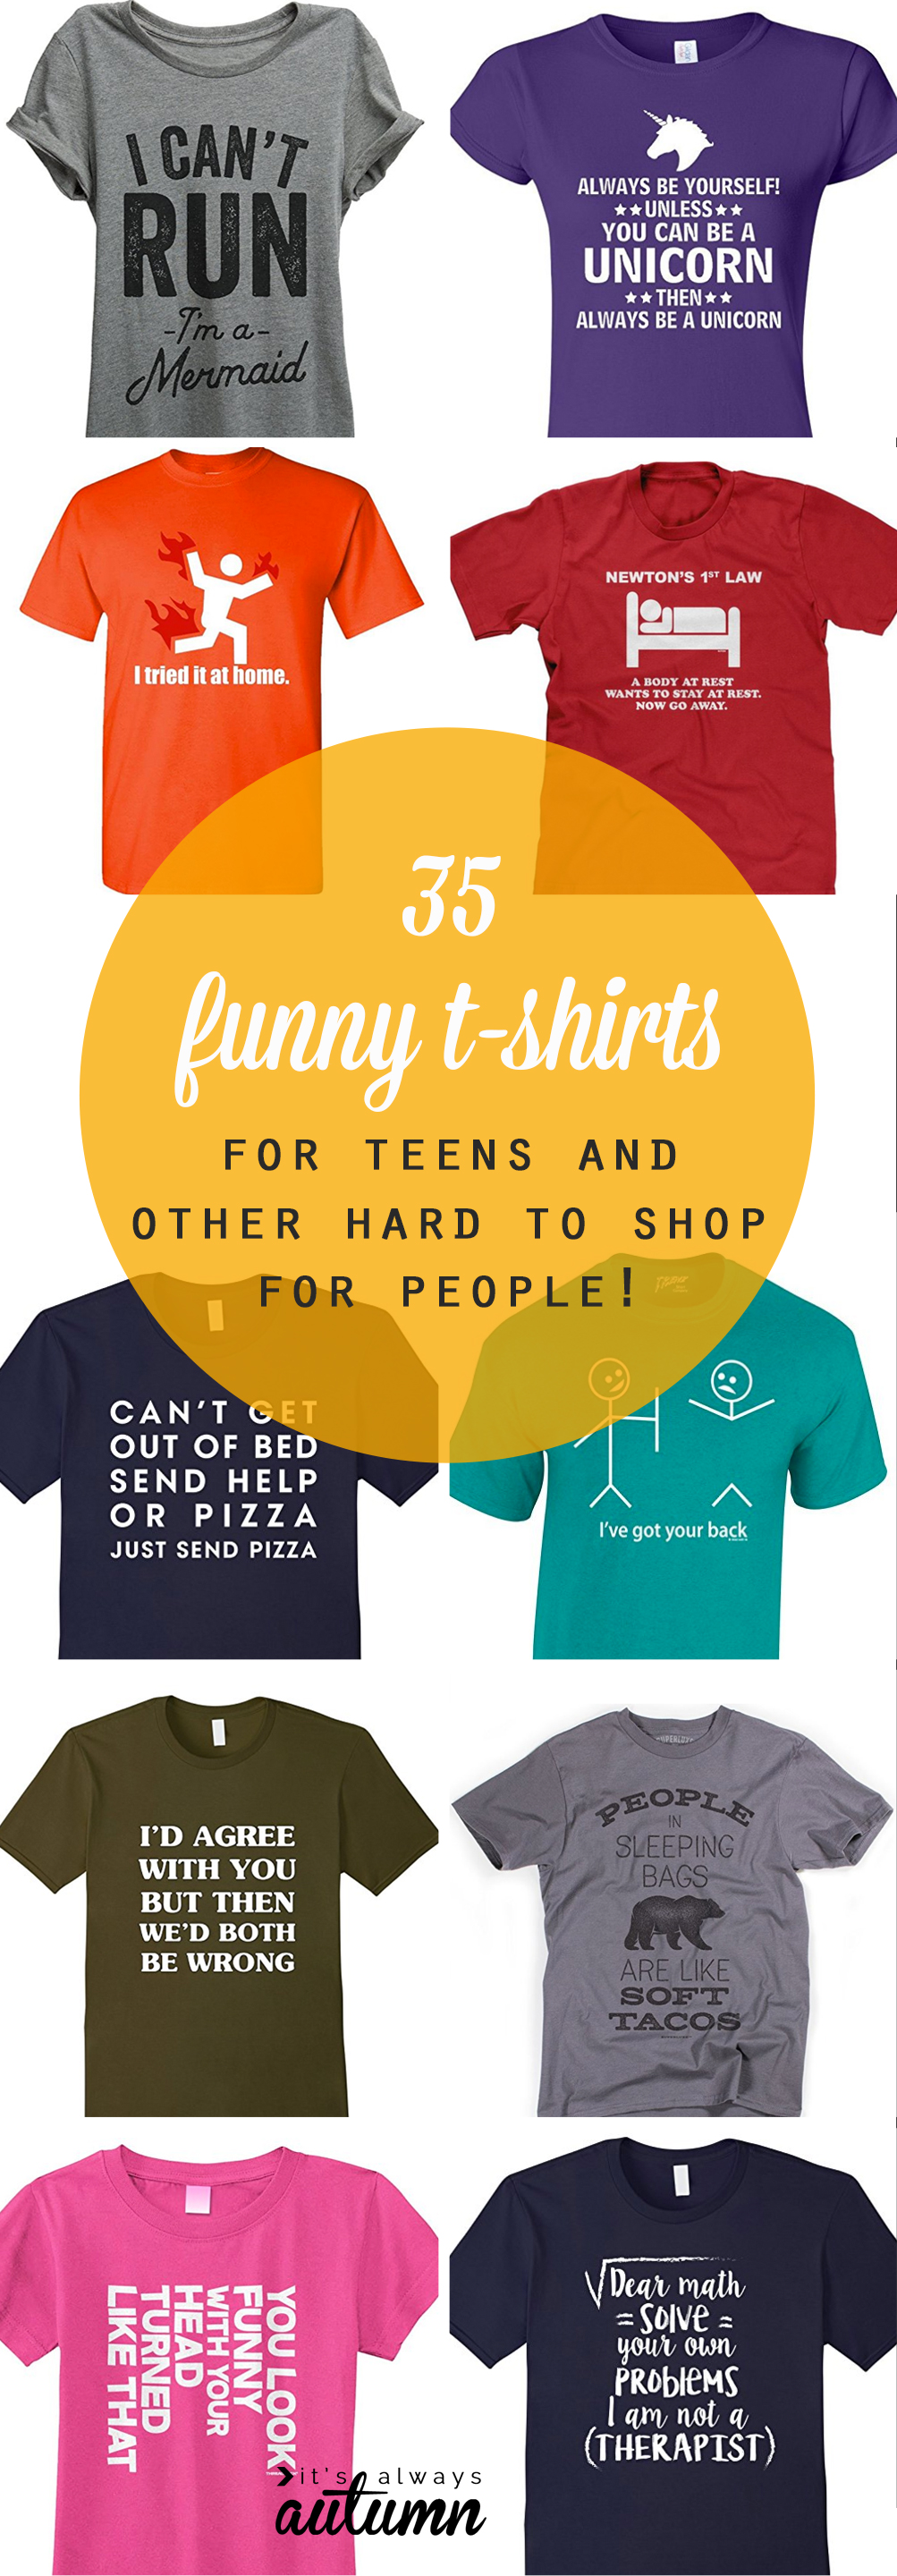 collage of funny t-shirts for teens